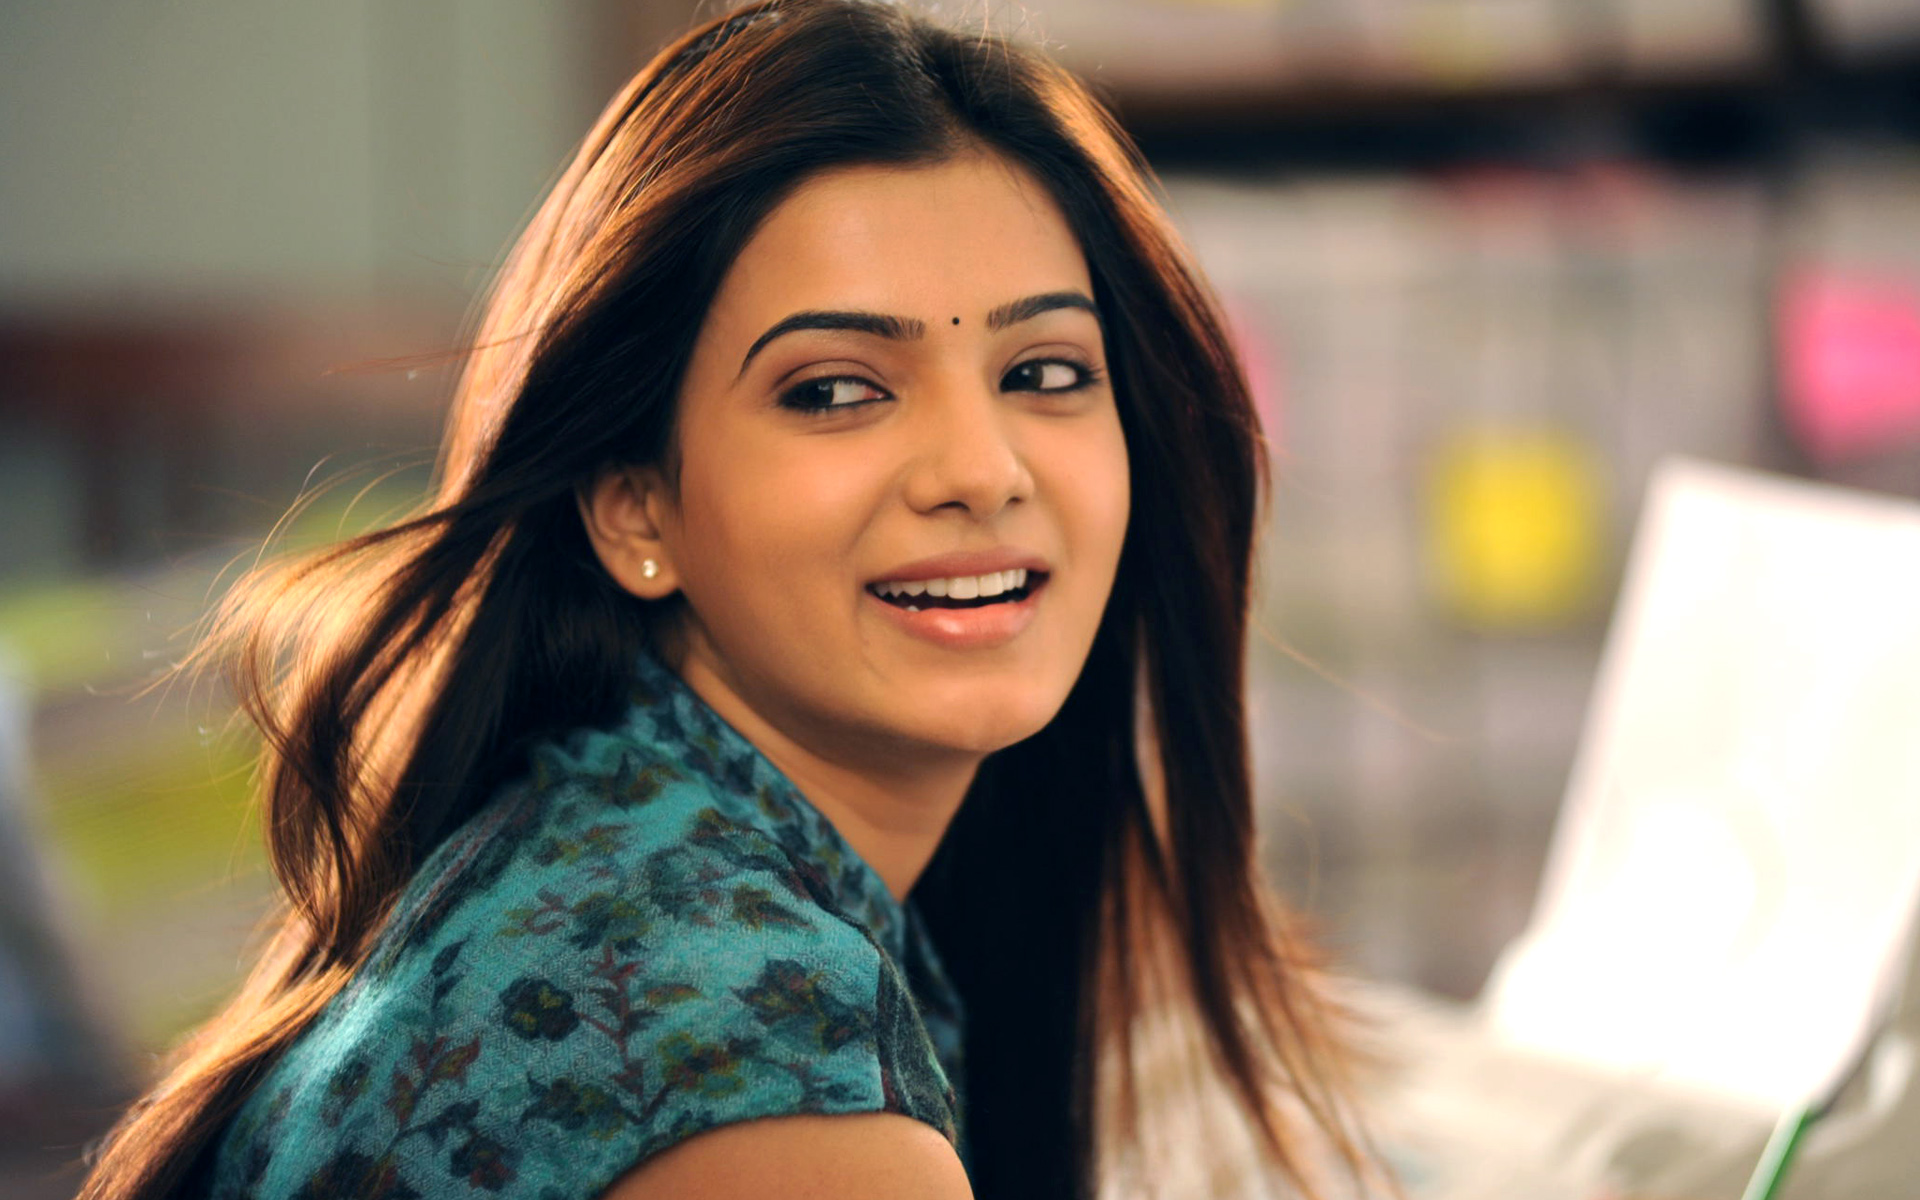 Samantha HD Wallpapers Free Download